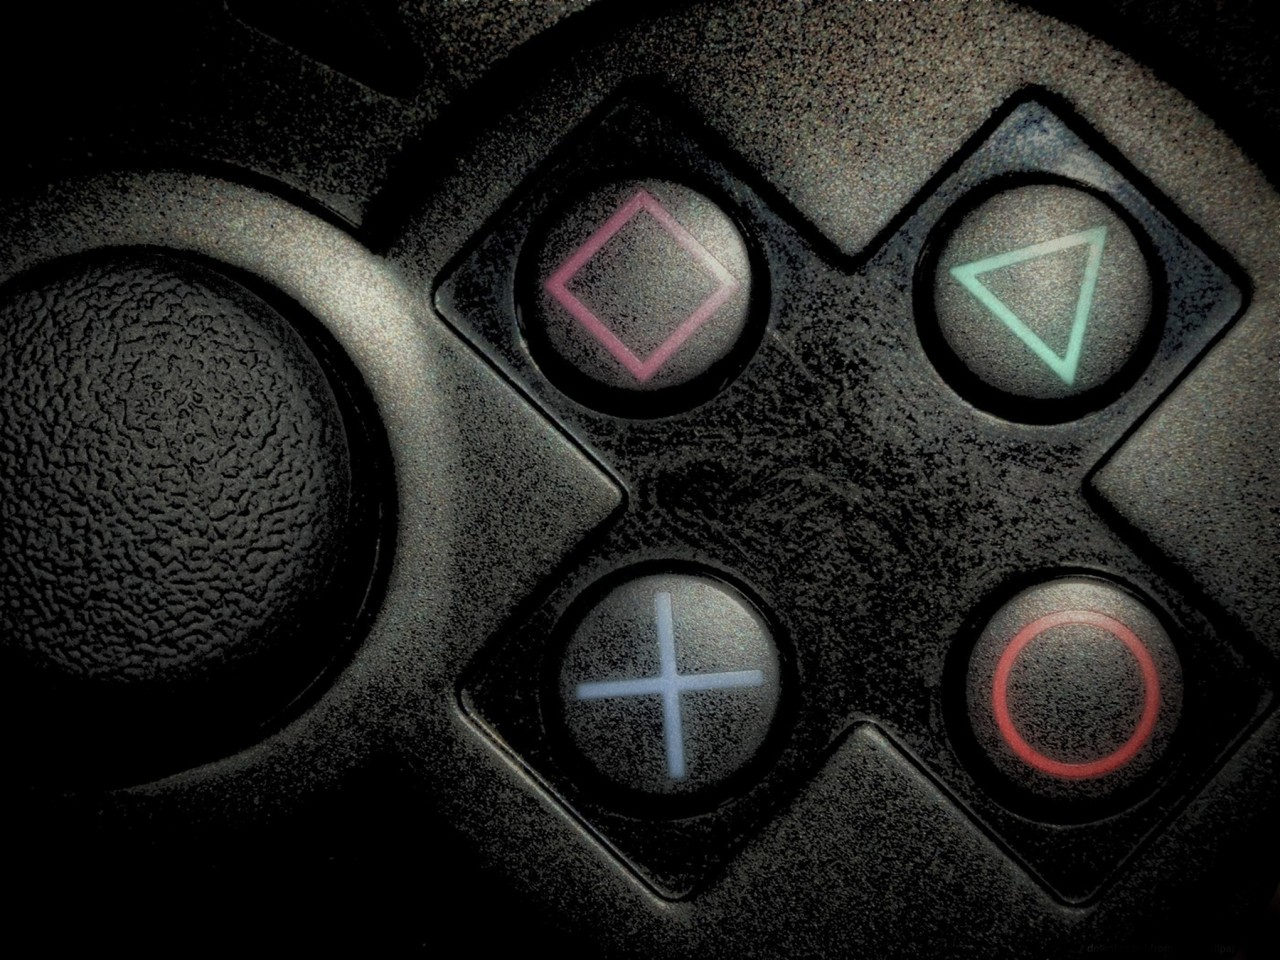 Playstation Controller Wallpaper Hd Wallpapers